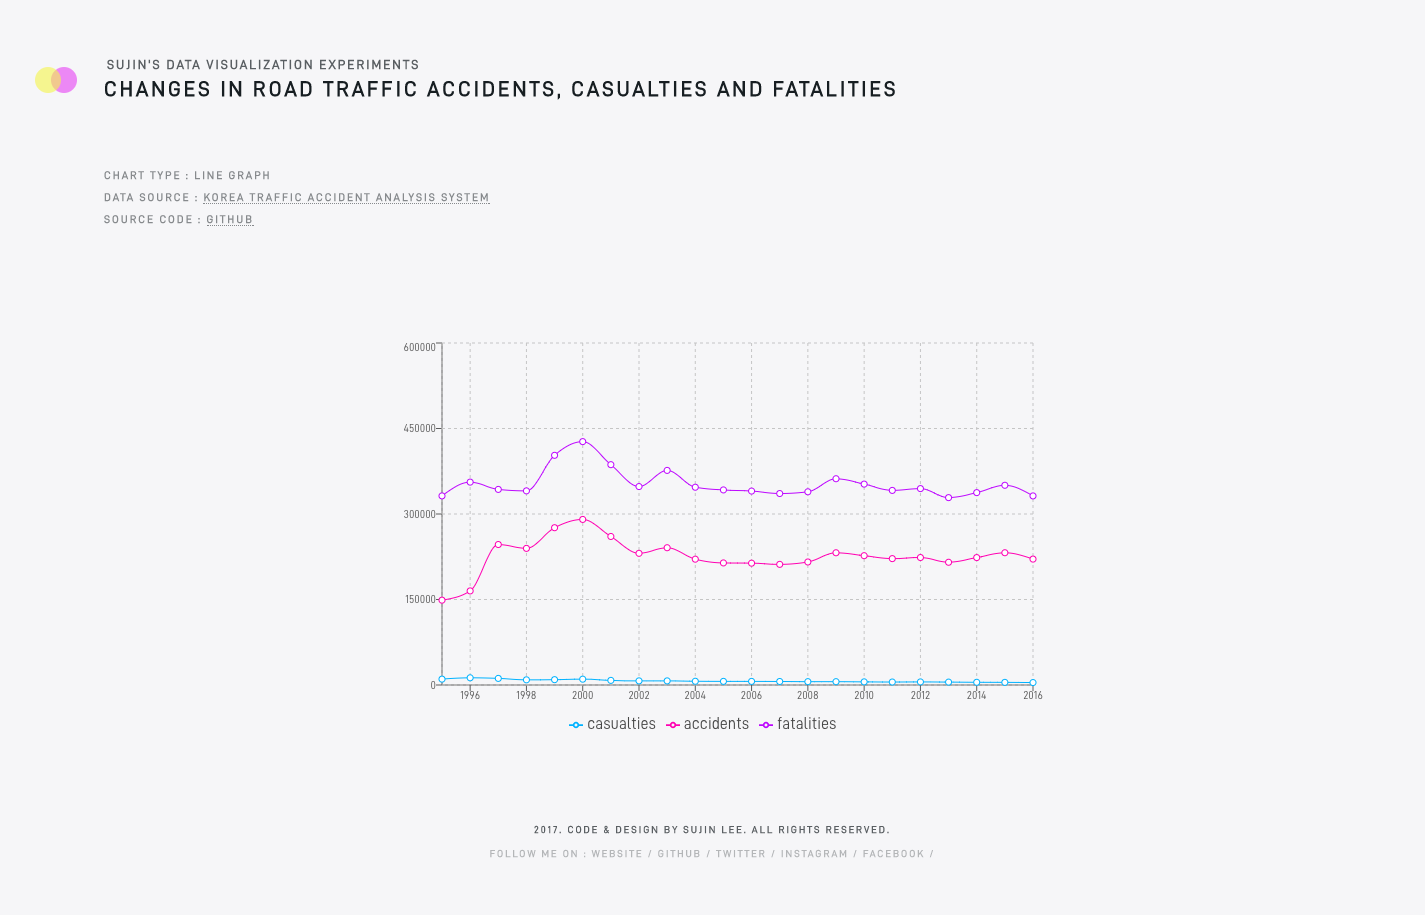 Changes in Road Traffic Accidents, Casualties and Fatalities